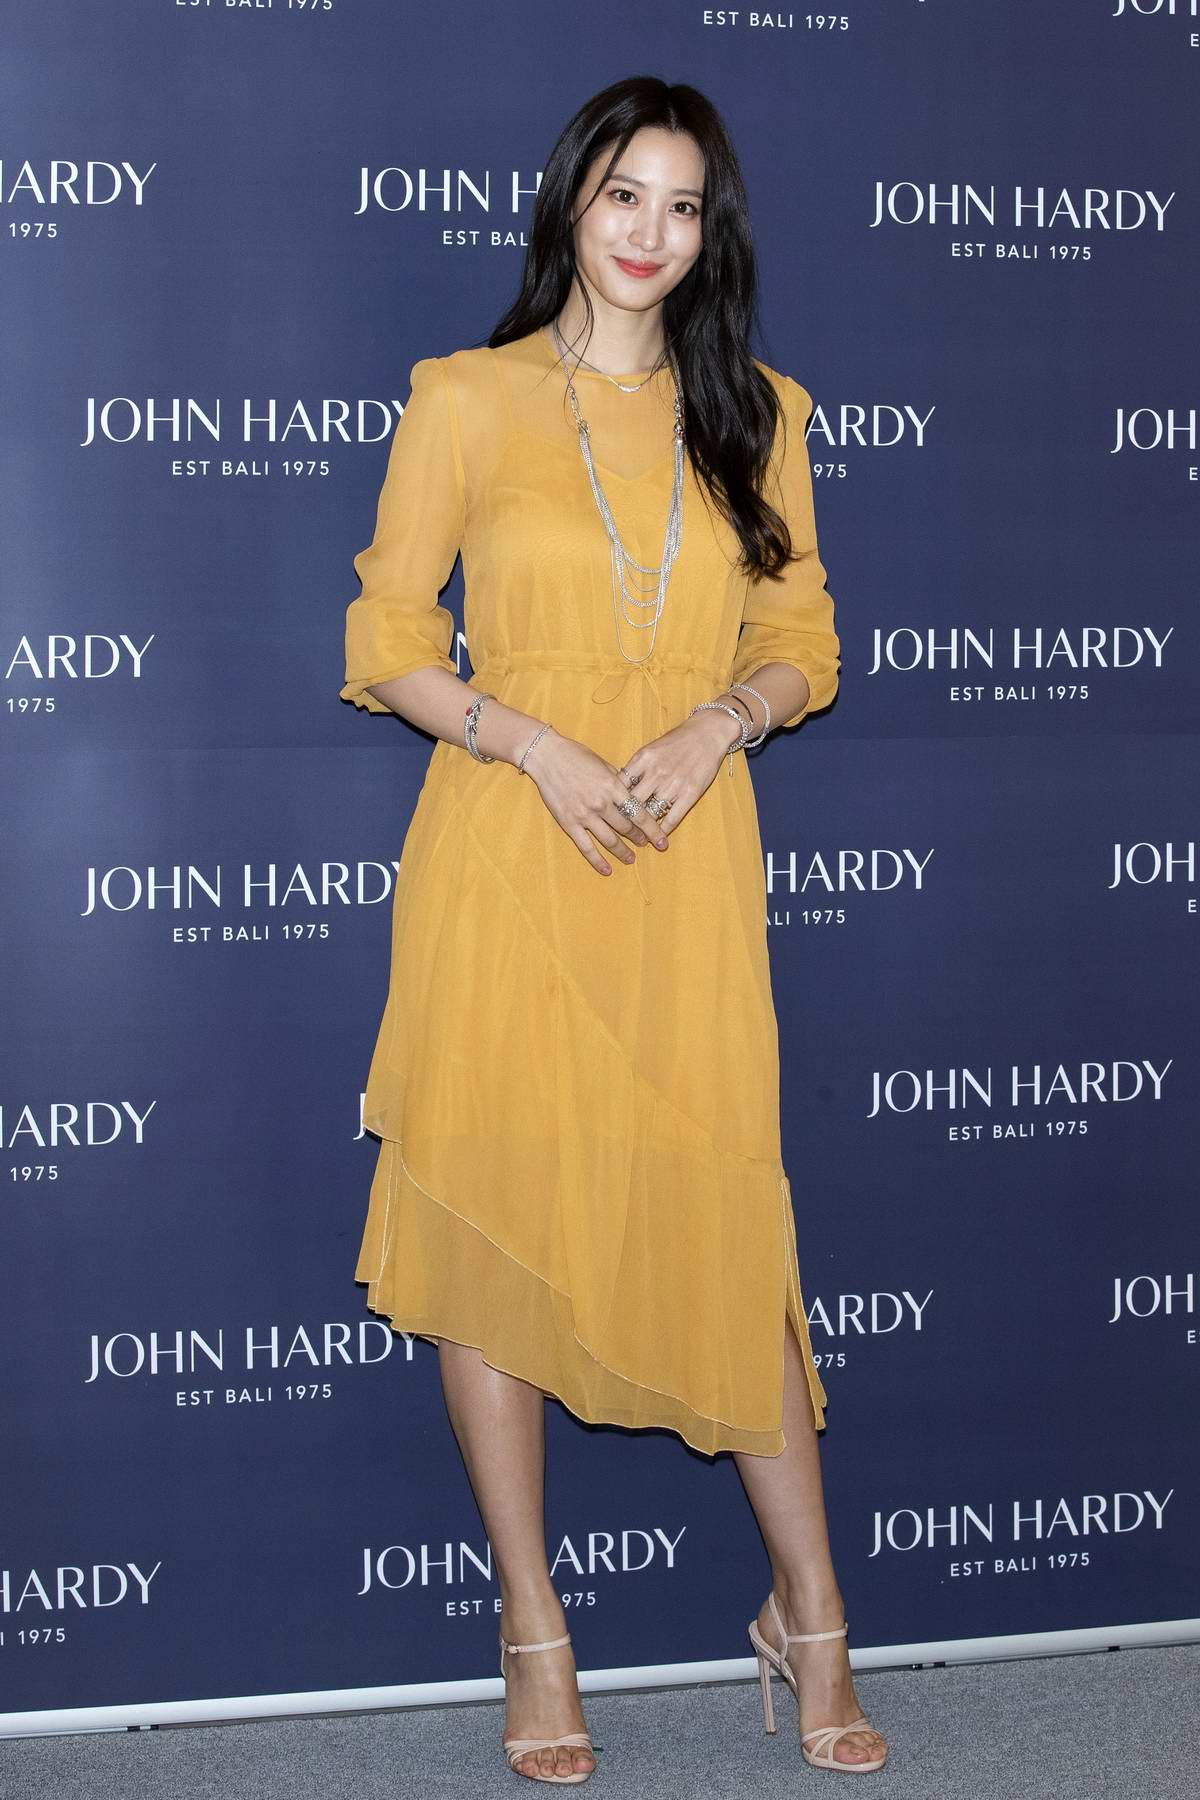 Claudia Kim attends the John Hardy fashion photocall in Seoul, South Korea